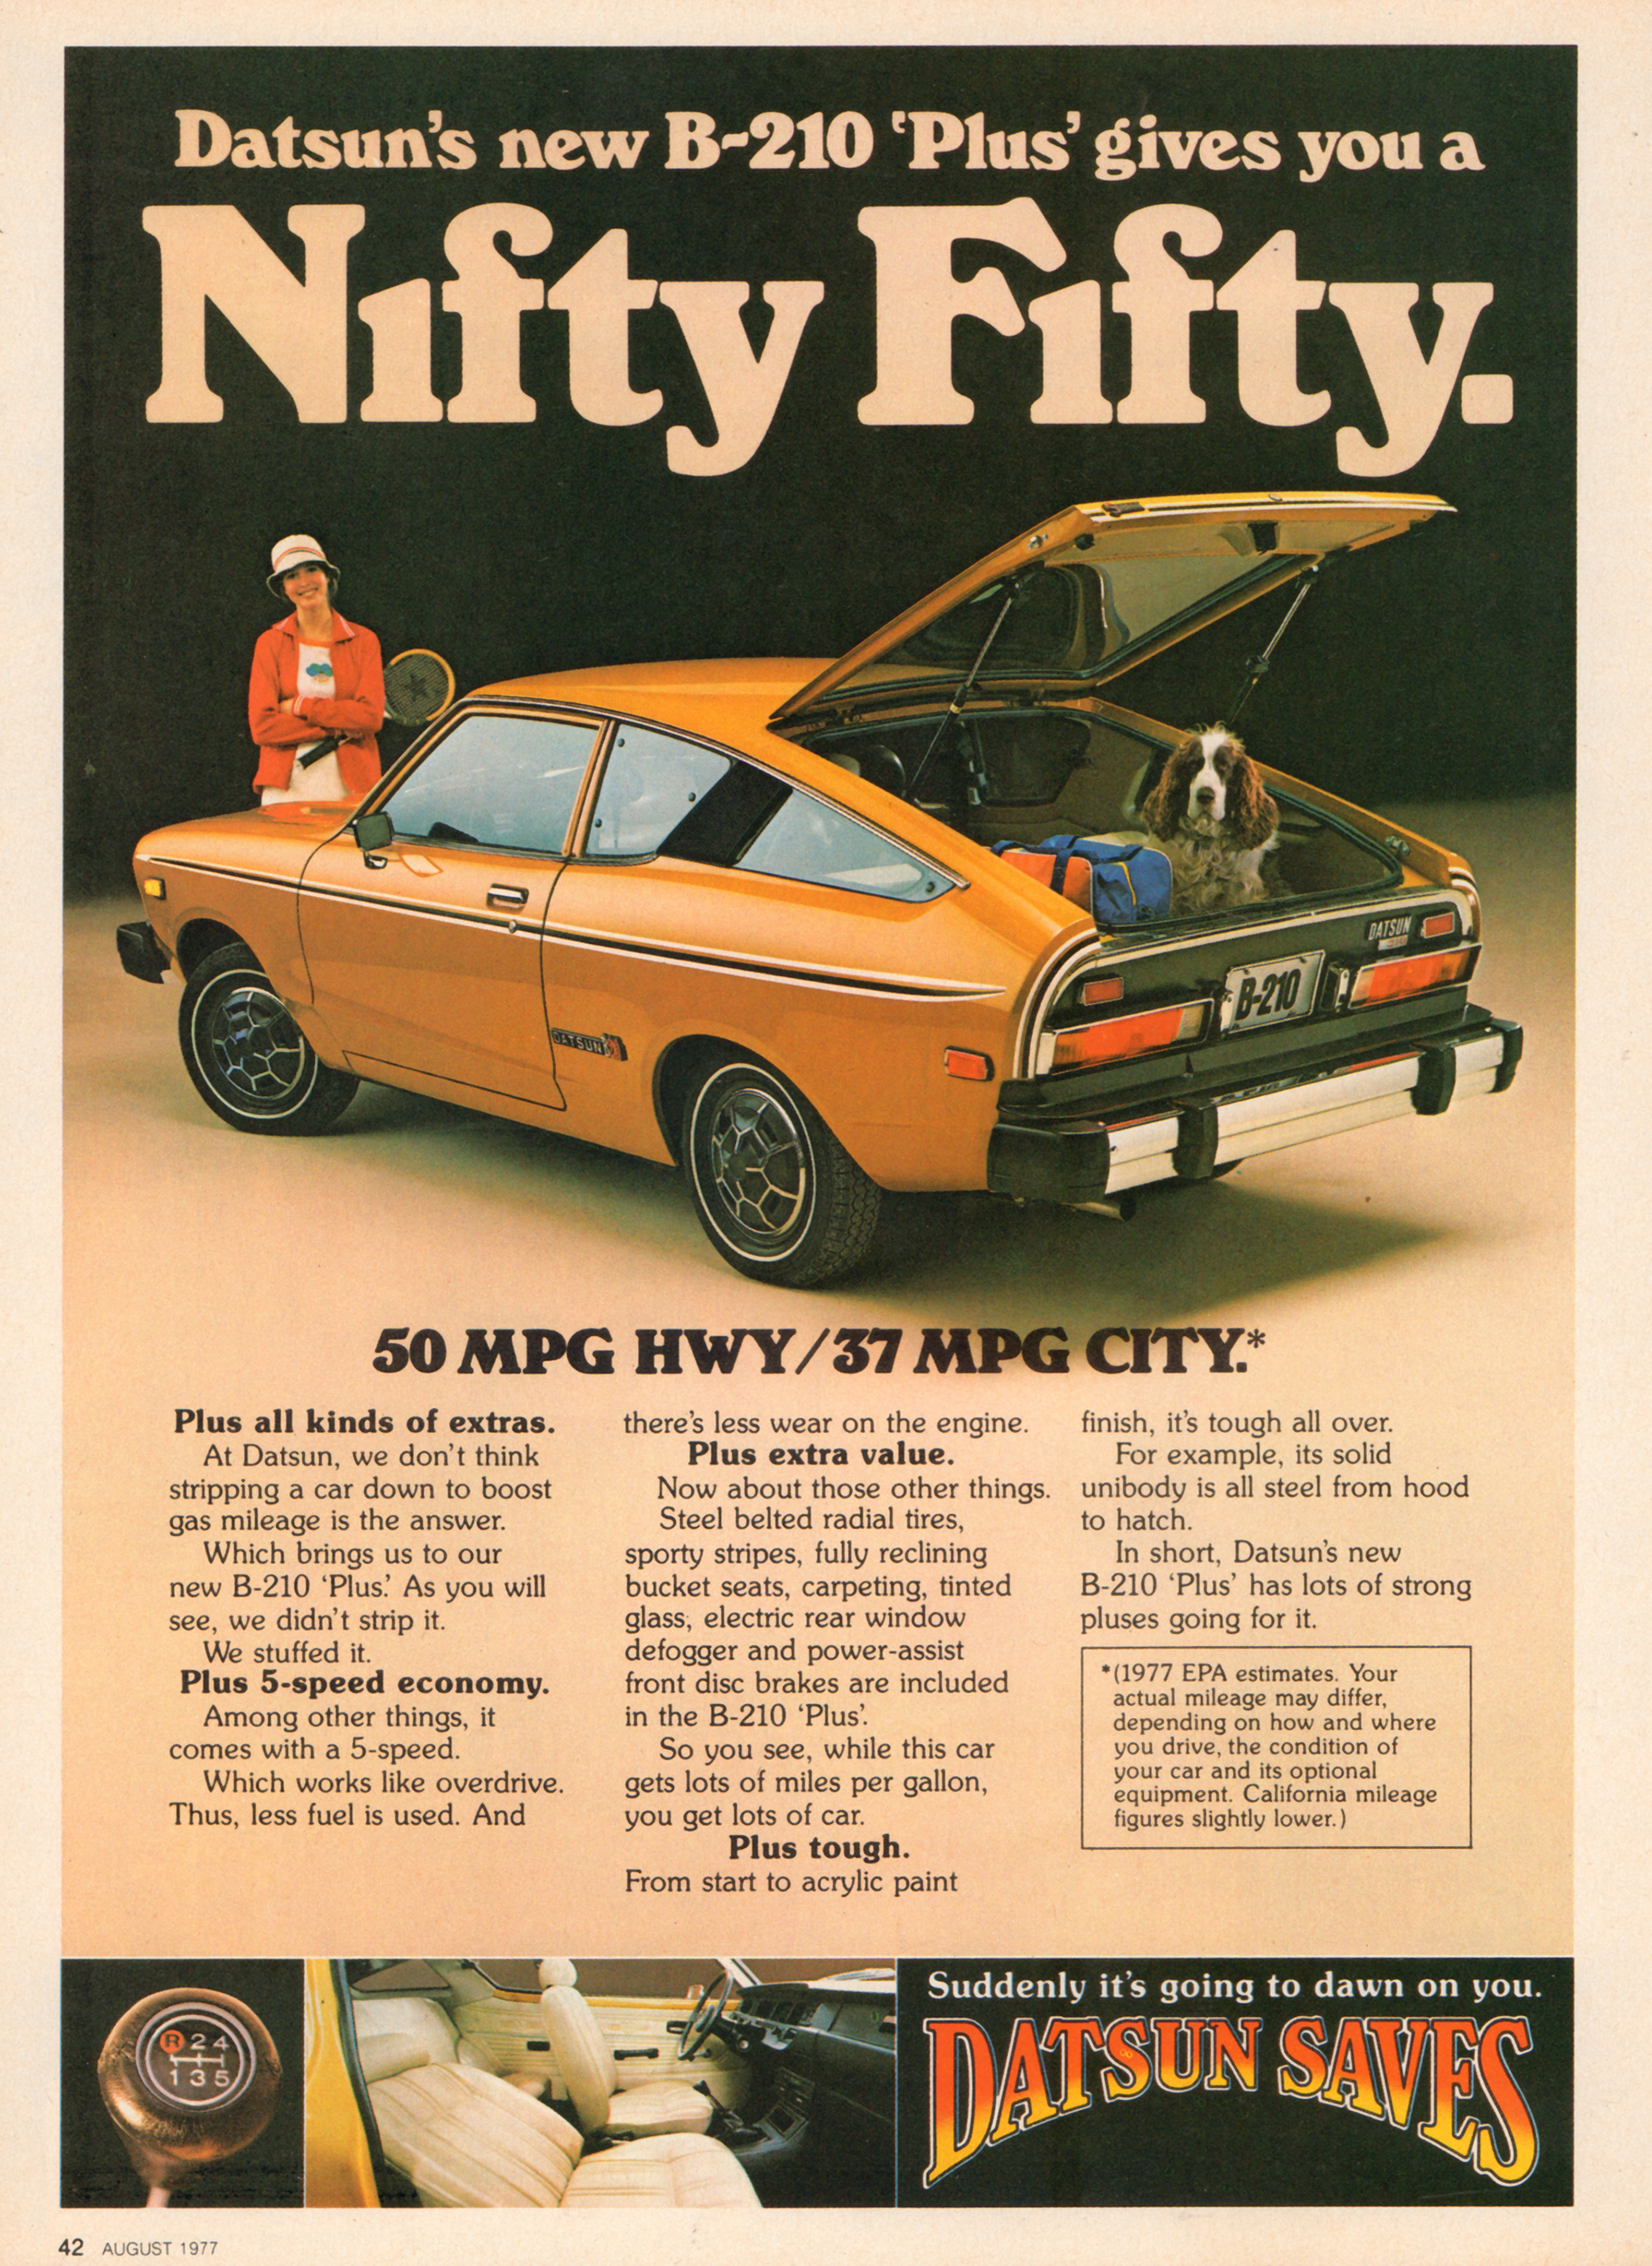 1977 Datsun B-210 - published in Motor Trend - August 1977